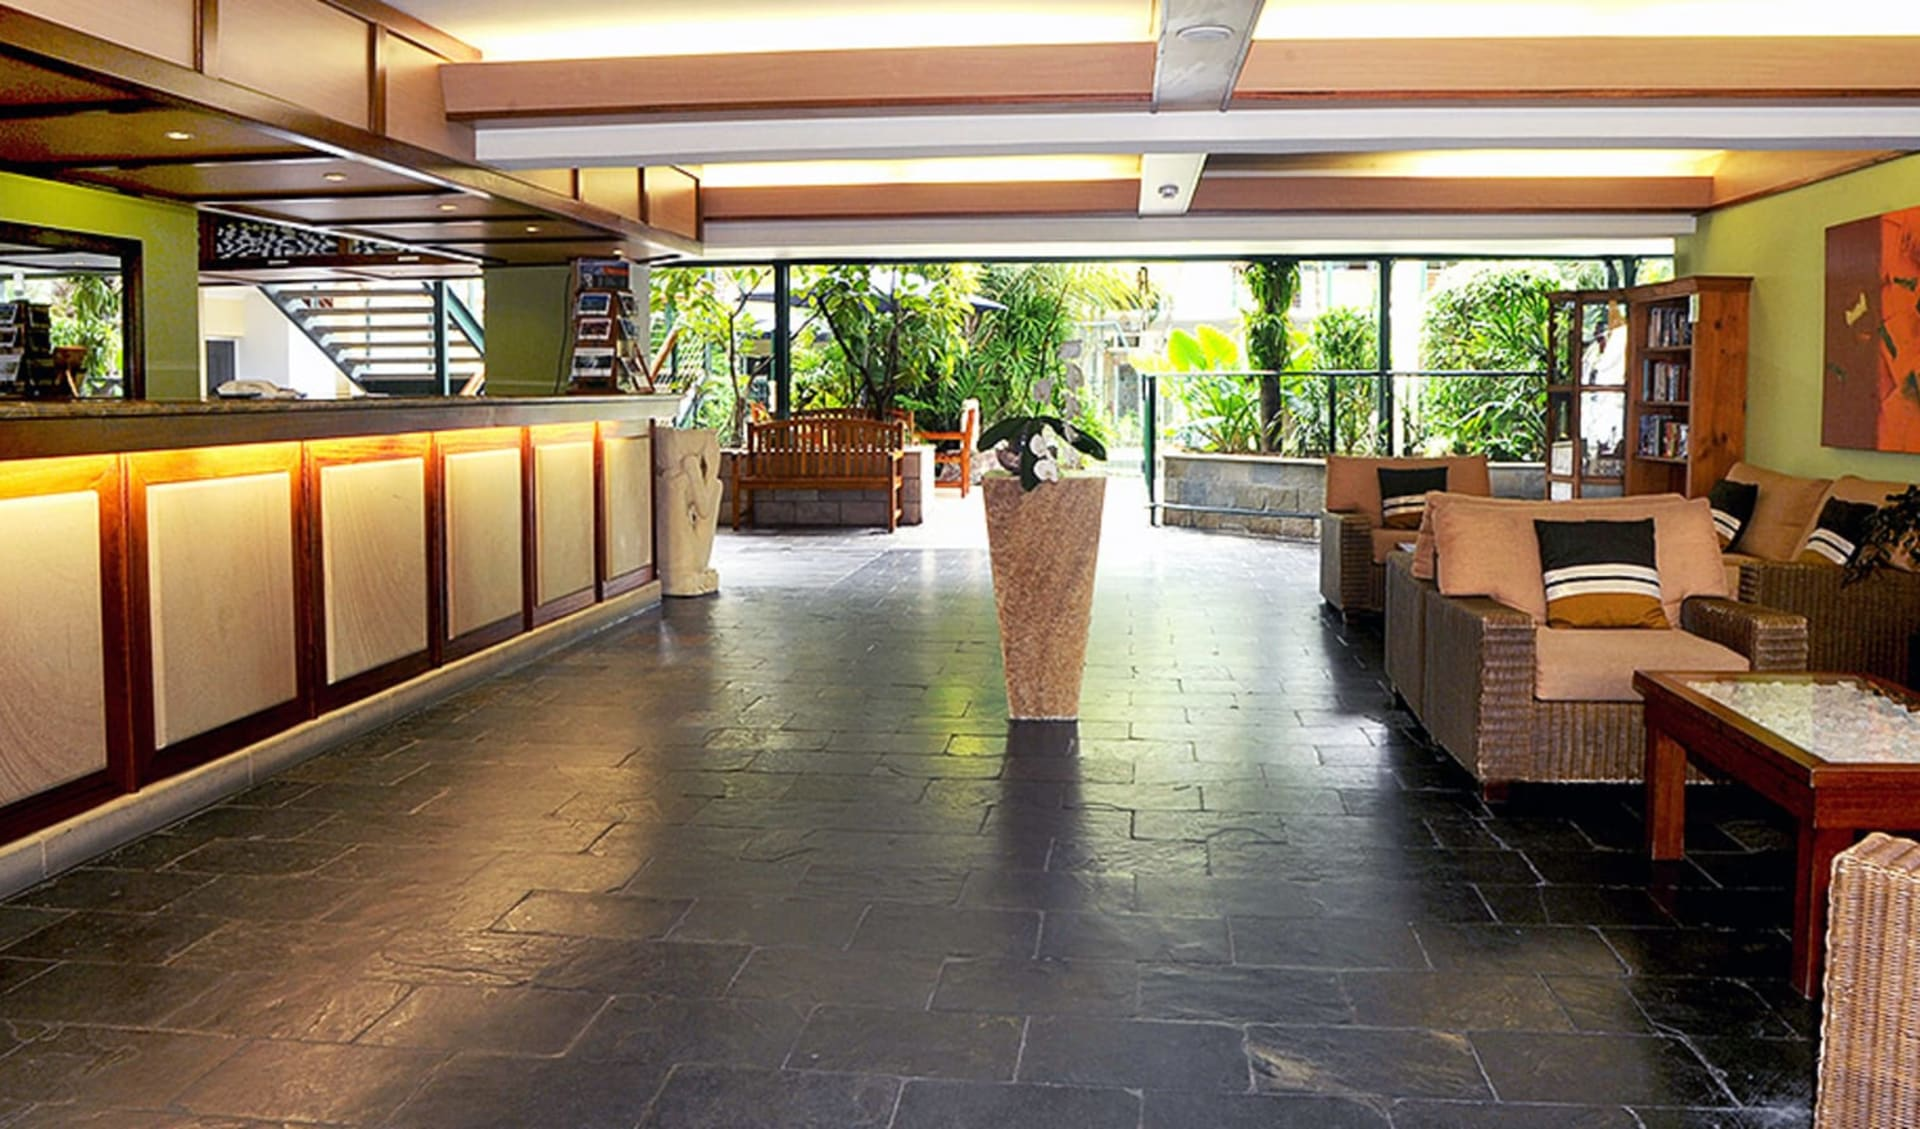 Bay Village Tropical Retreat in Cairns: Cairns_bay-village-tropical_lobby